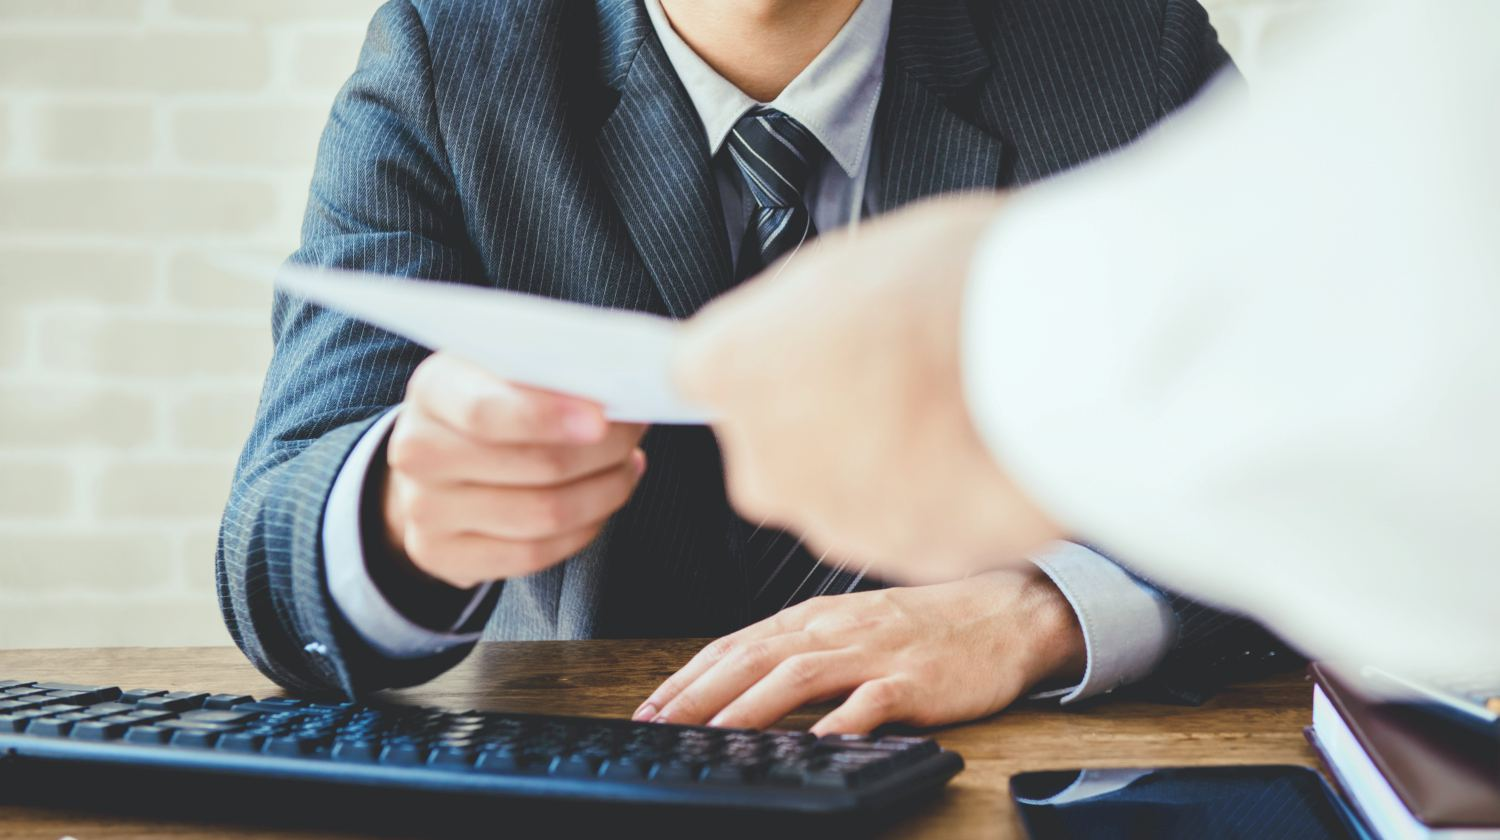 Featured   businessman passing document   What To Do When Your Employer Stopped Matching Your 401K   Inside Your IRA   401k employer match calculator